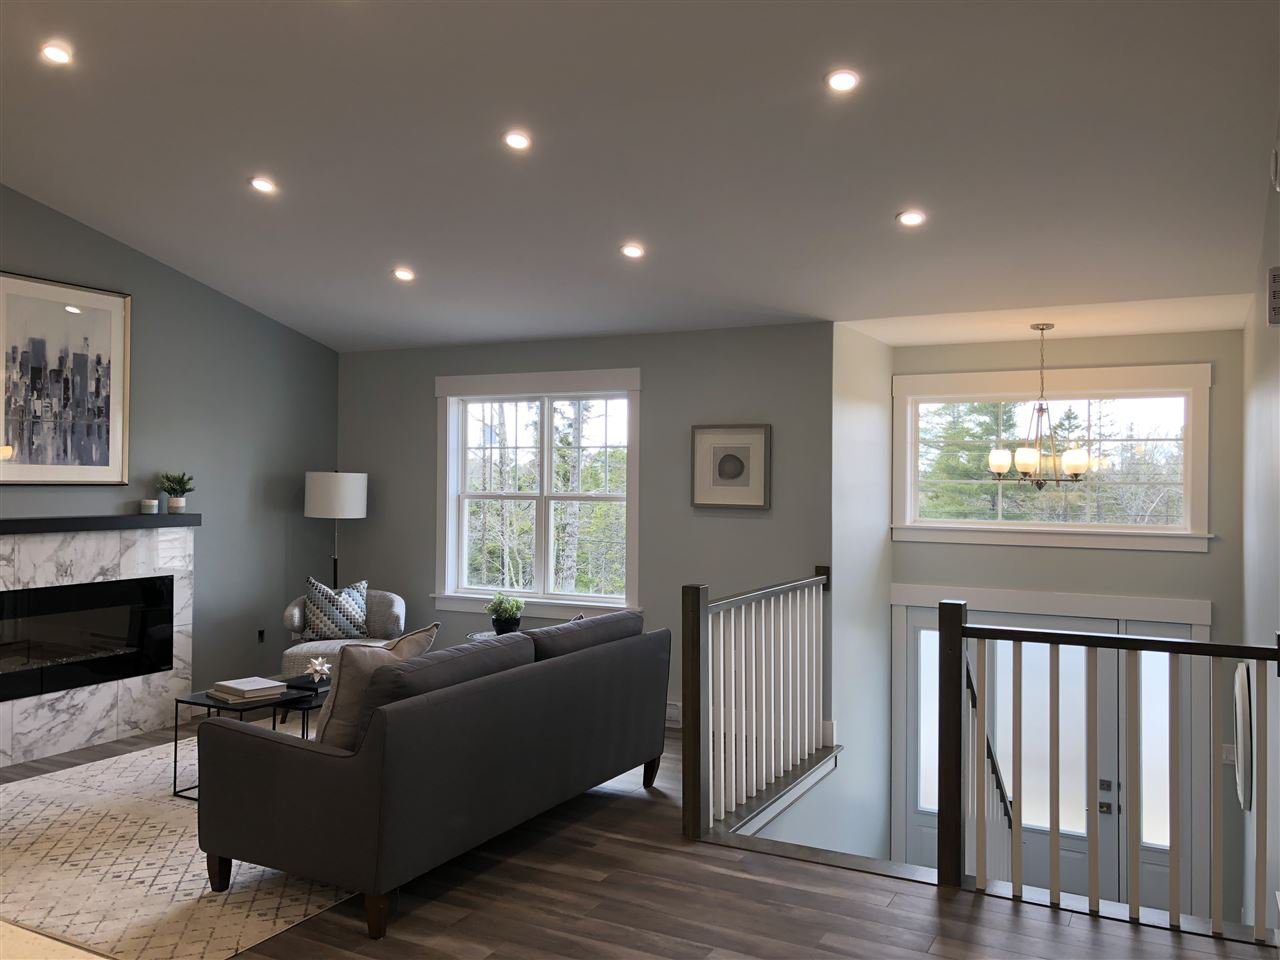 Photo 4: Photos: Lot 678 - 215 Confederation Avenue in Fall River: 30-Waverley, Fall River, Oakfield Residential for sale (Halifax-Dartmouth)  : MLS®# 201913206